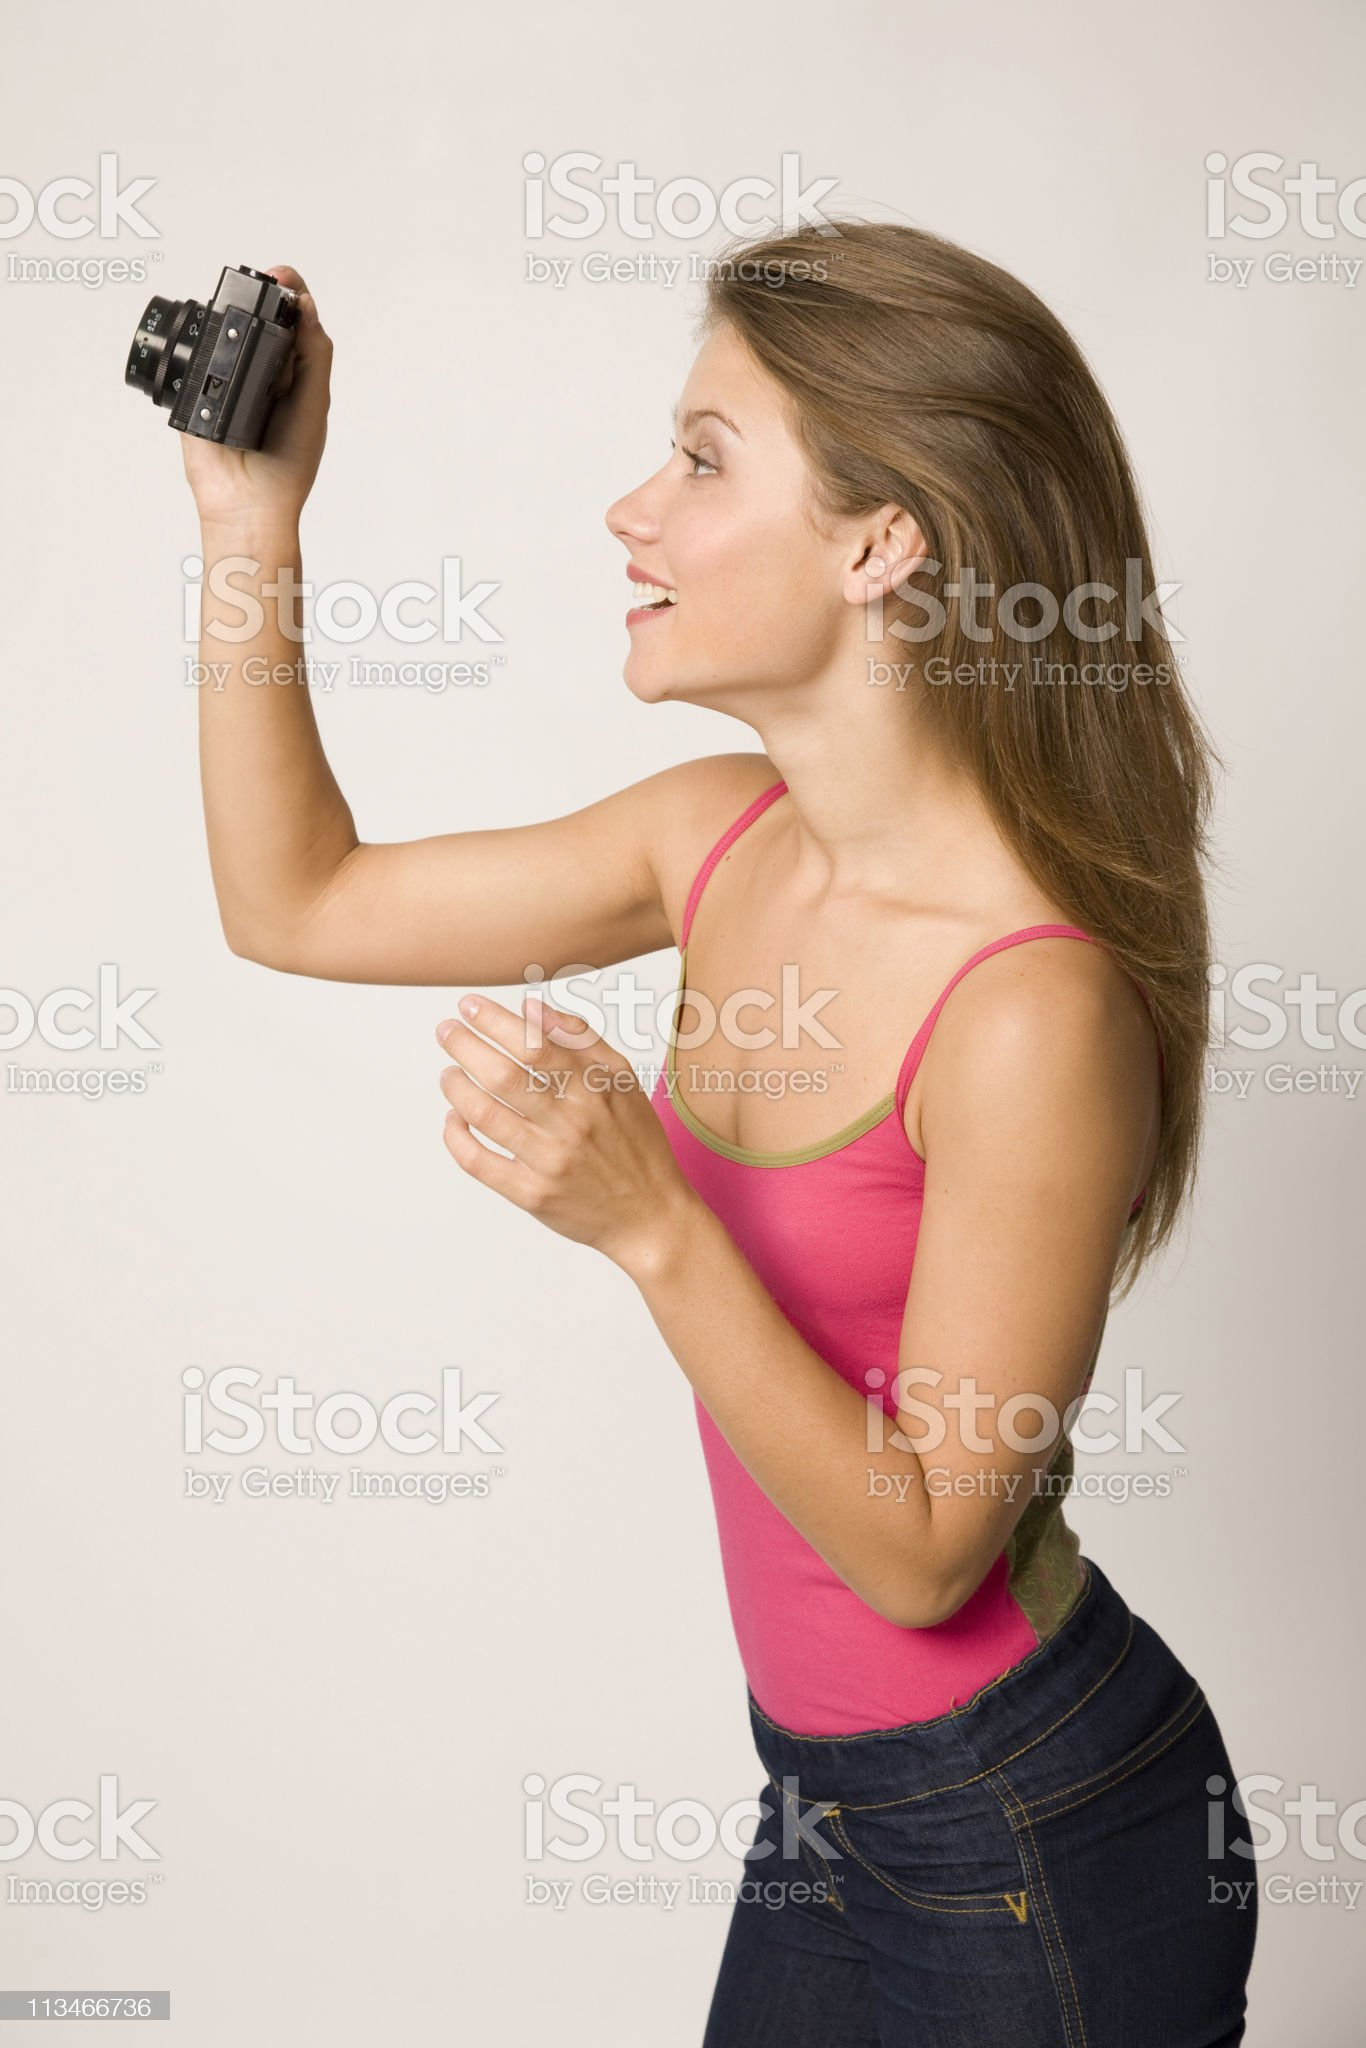 Pretty girl with camera. royalty-free stock photo